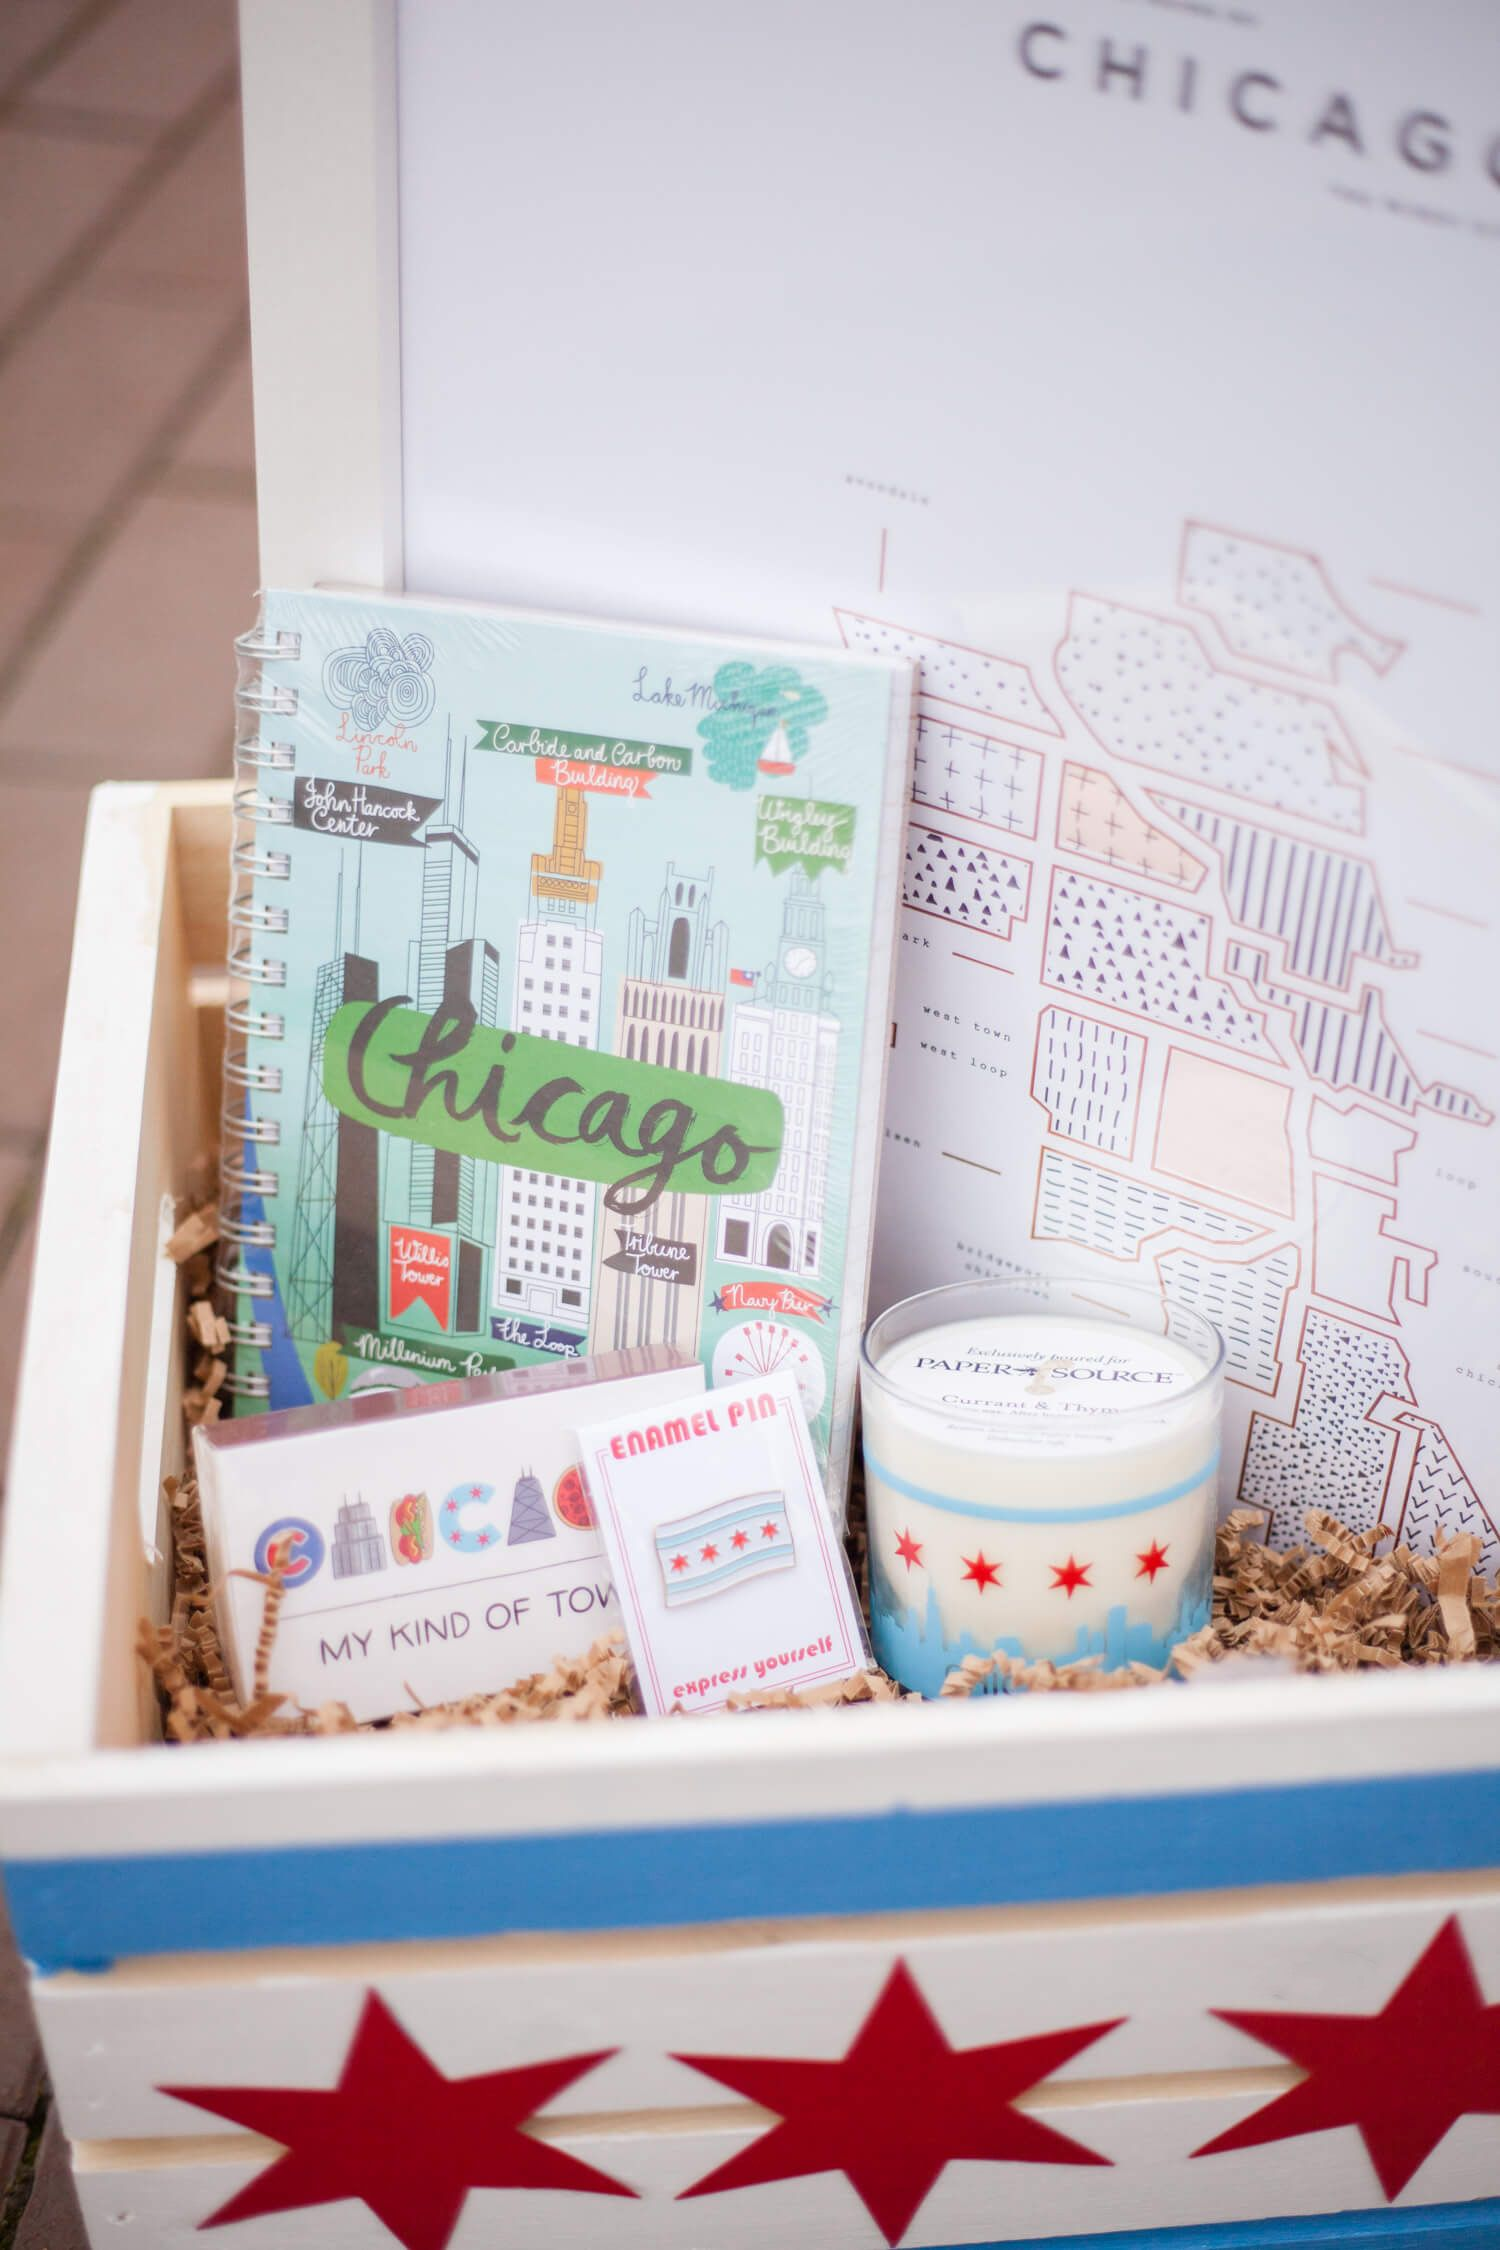 Chicago Themed Gift Basket So Perfect For Someone Who Just Loves The Windy City